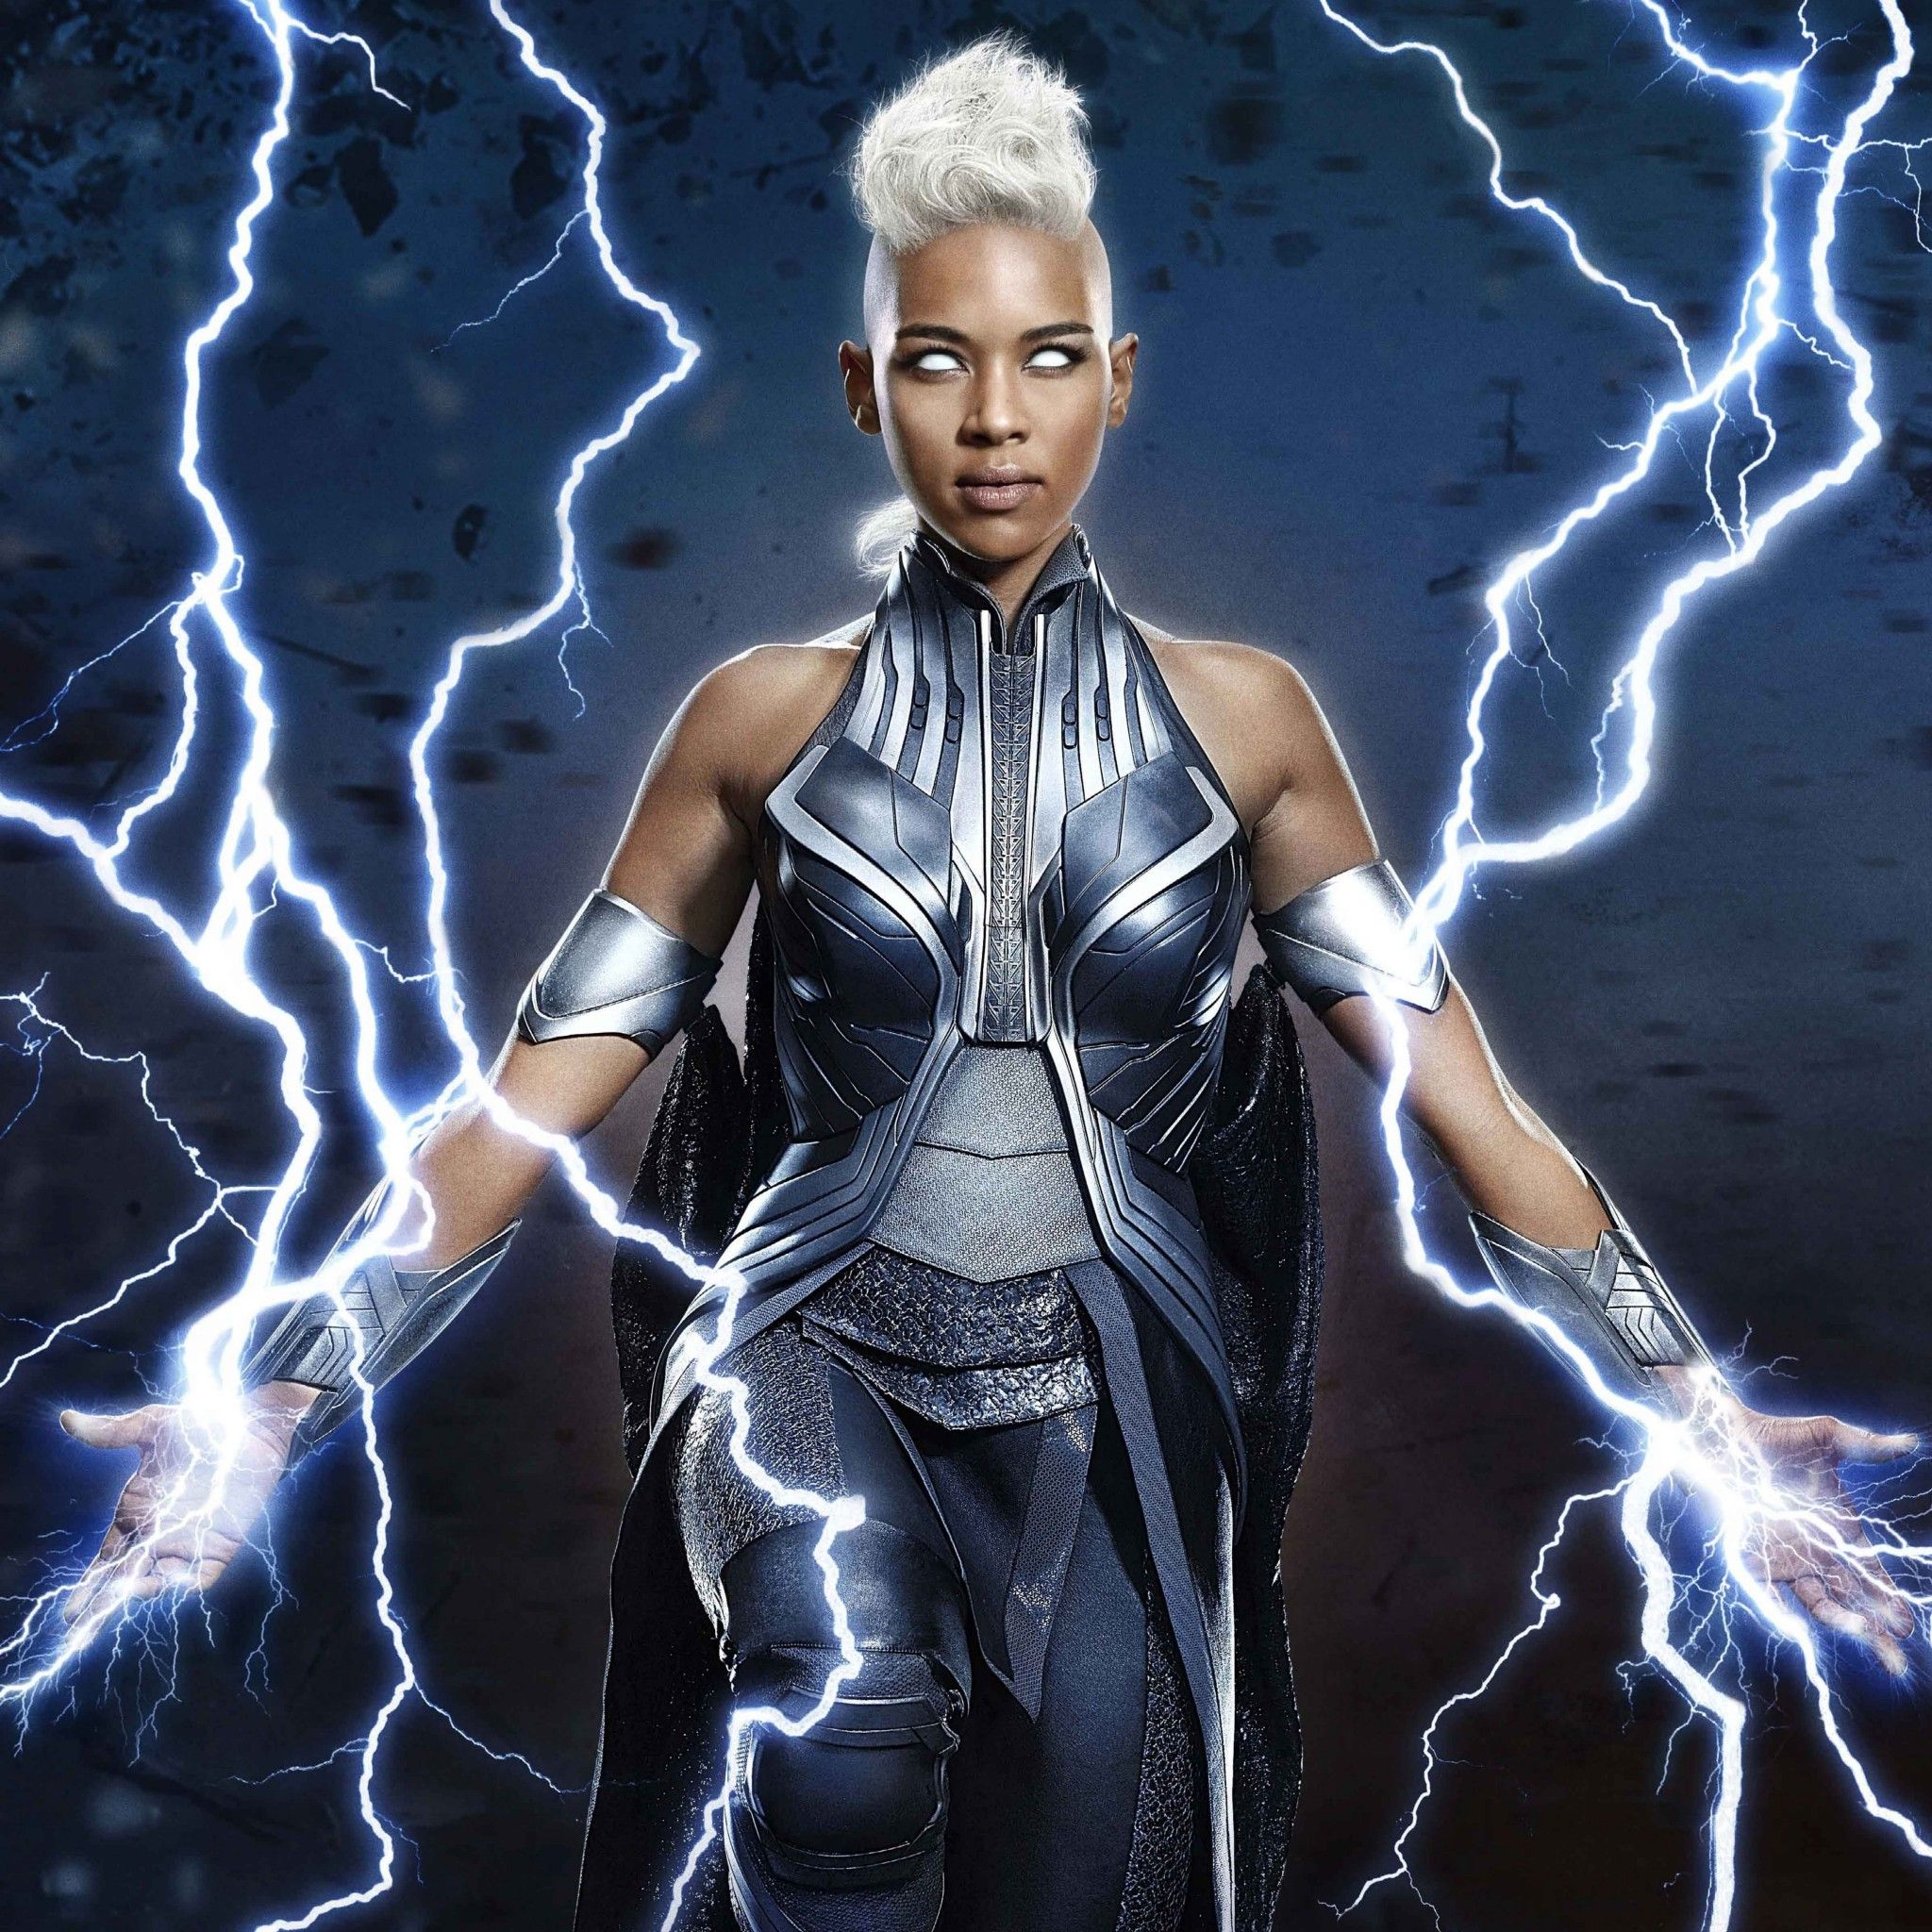 x-men apocalypse: storm - tap to see more of the x-men apocalypse